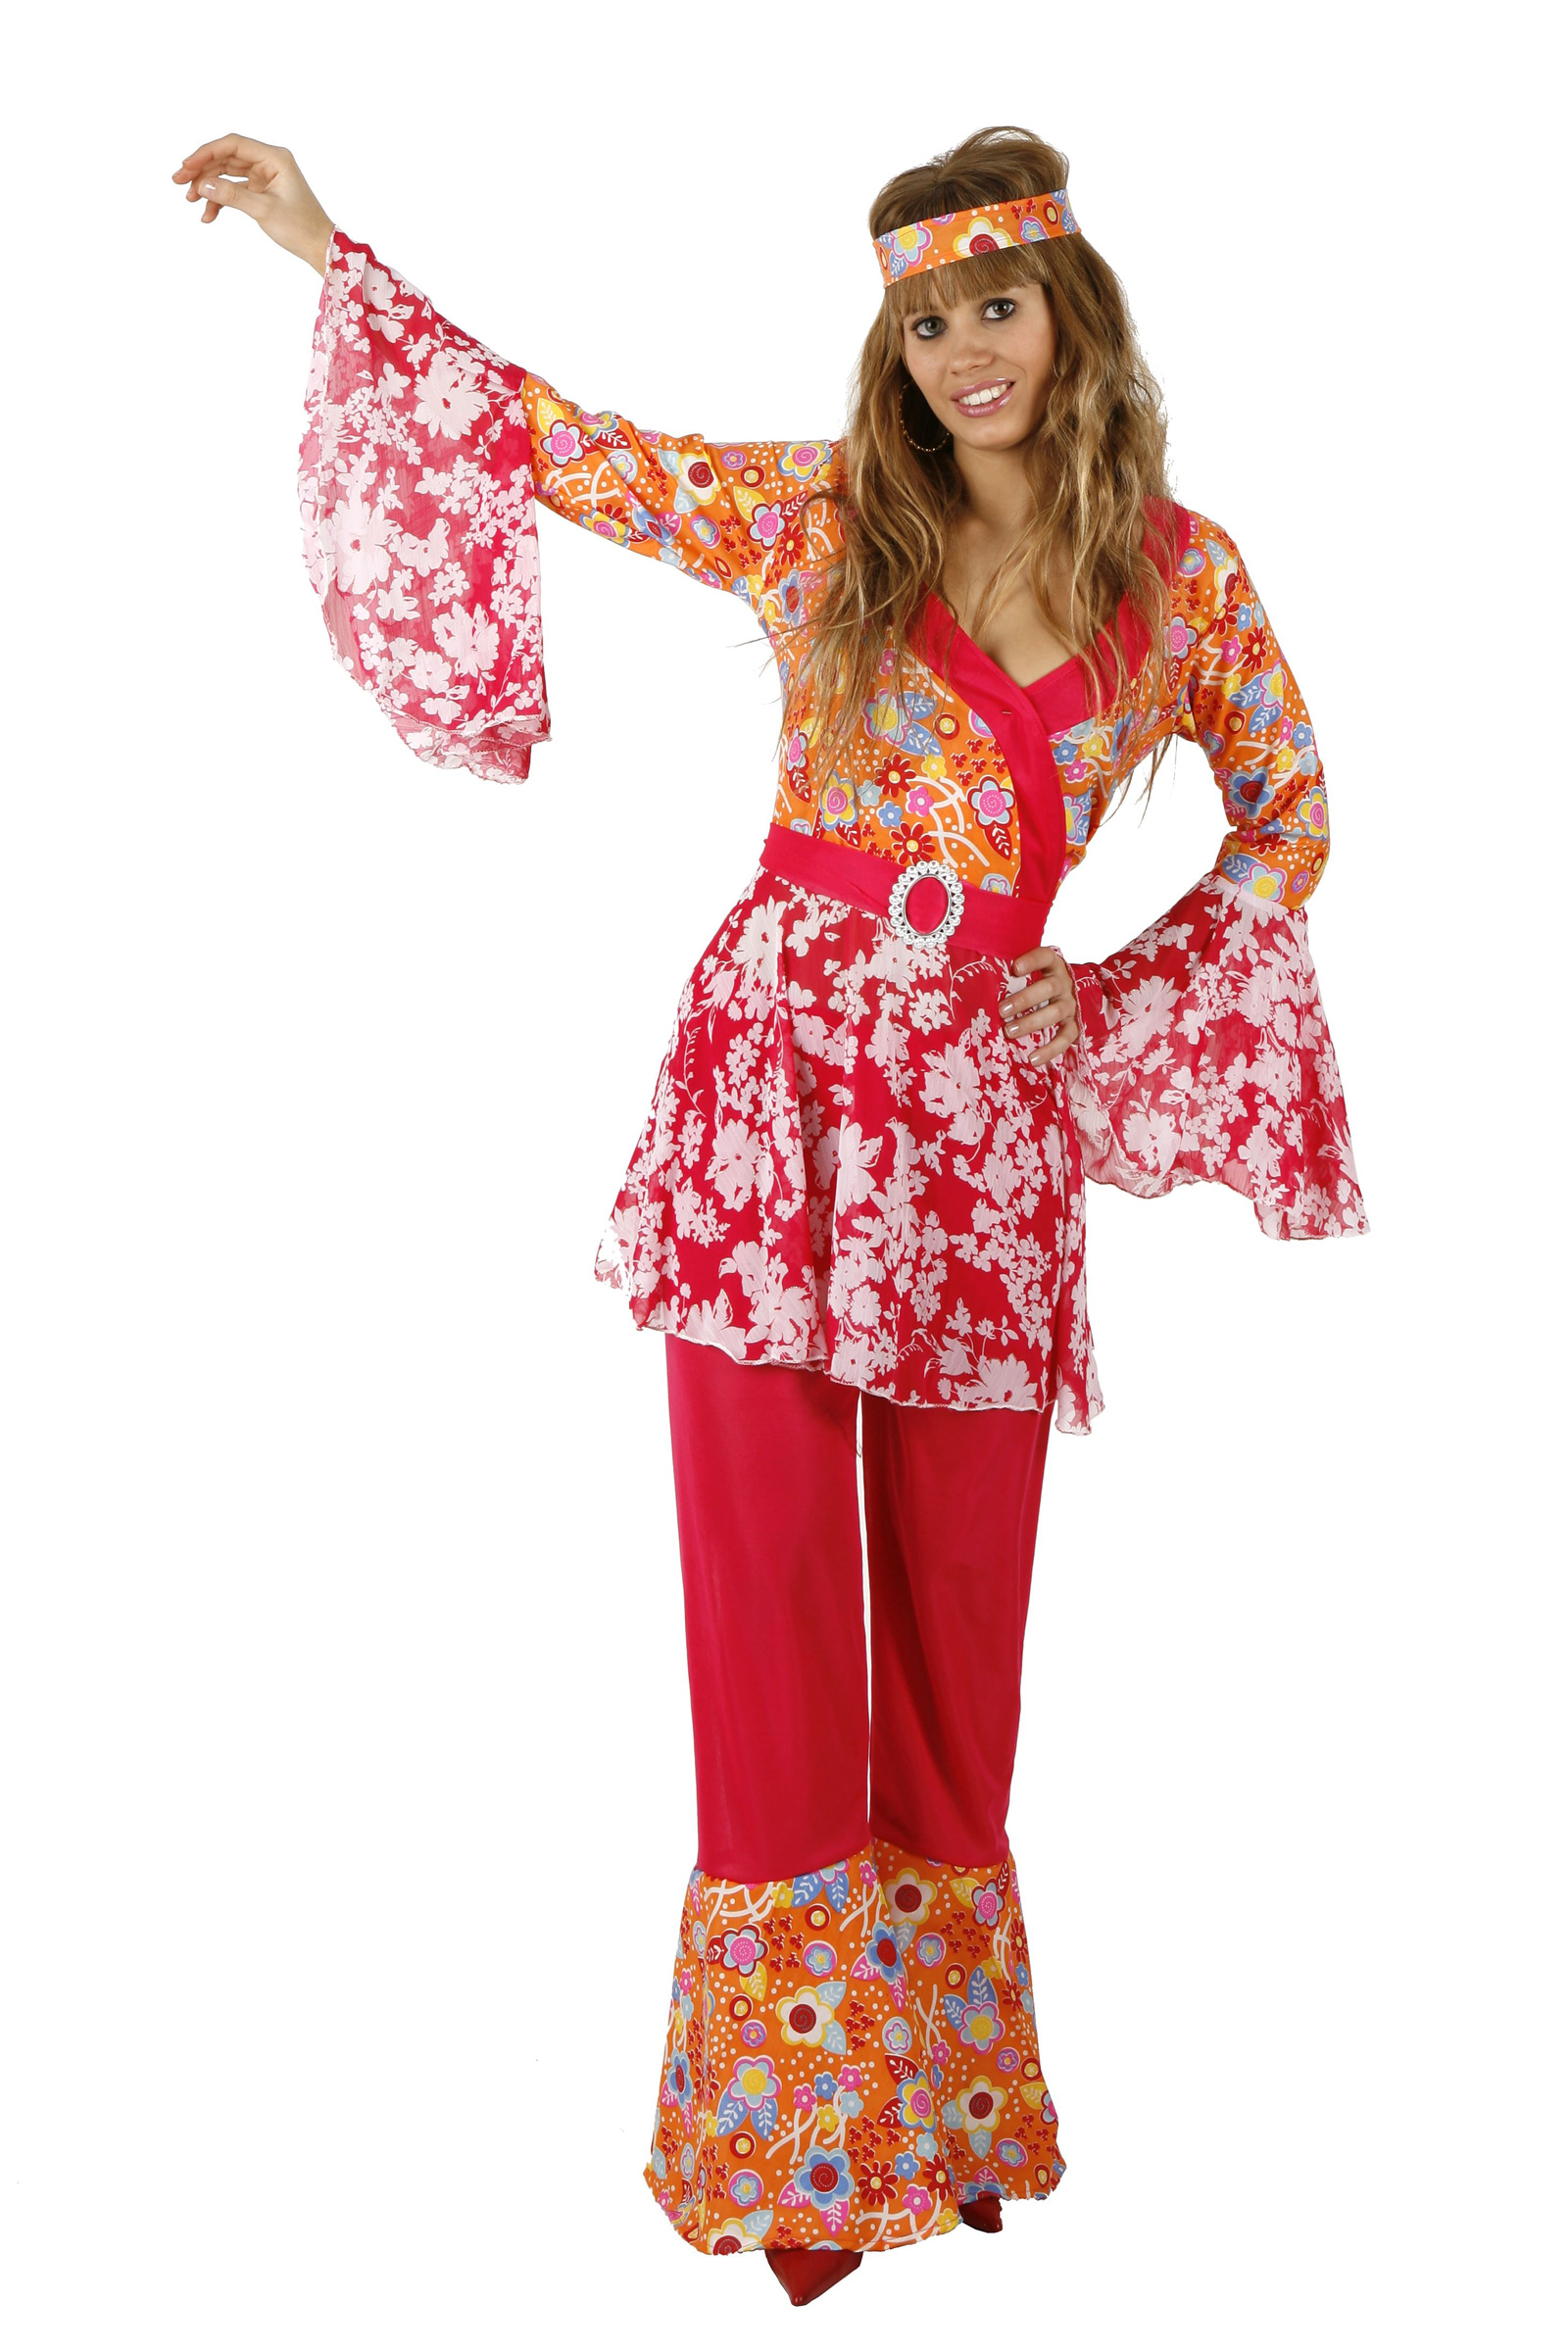 d guisement hippie pour femme d guisement baba cool pas cher costume carnaval. Black Bedroom Furniture Sets. Home Design Ideas